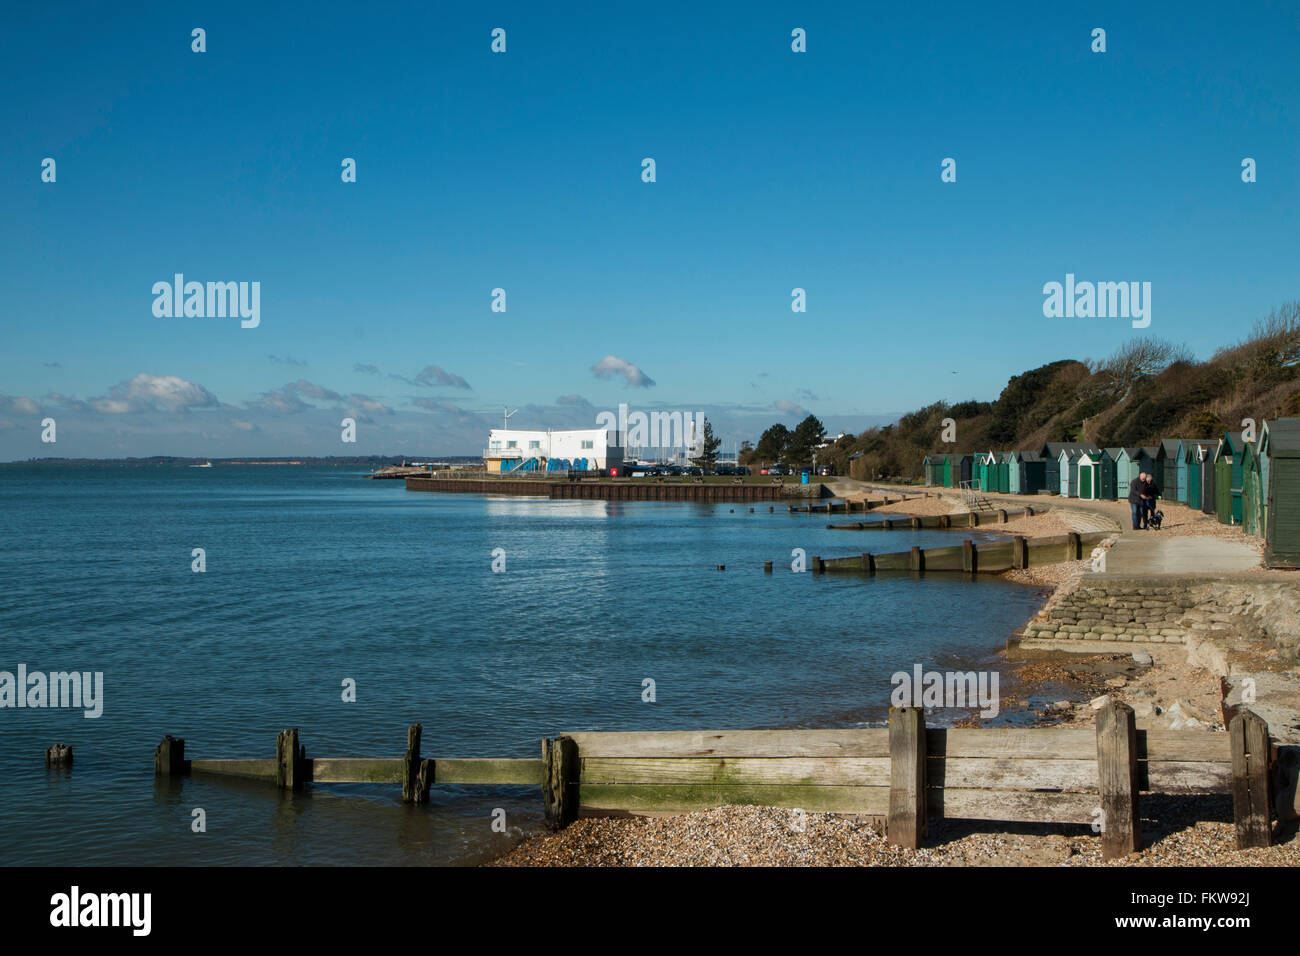 Meon Shore, Hampshire at full tide with Beach Huts to the right. Hillhead sailing club is in the distance - Stock Image